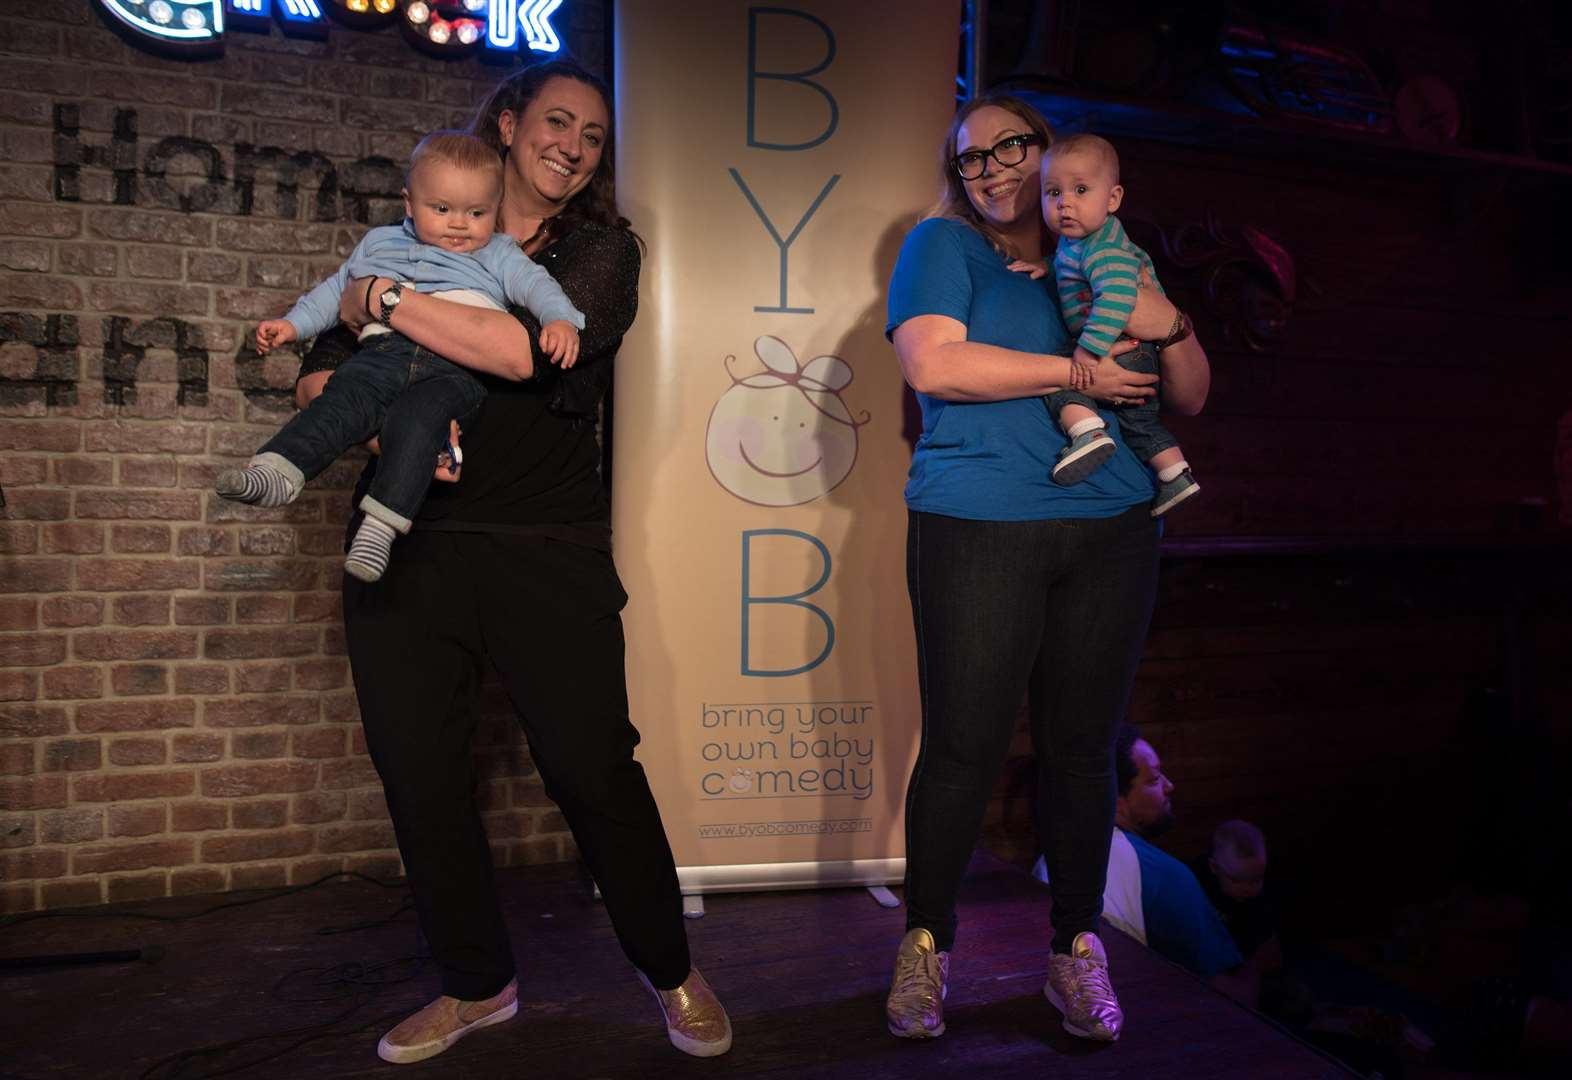 An afternoon of top comedy - and you can take your baby